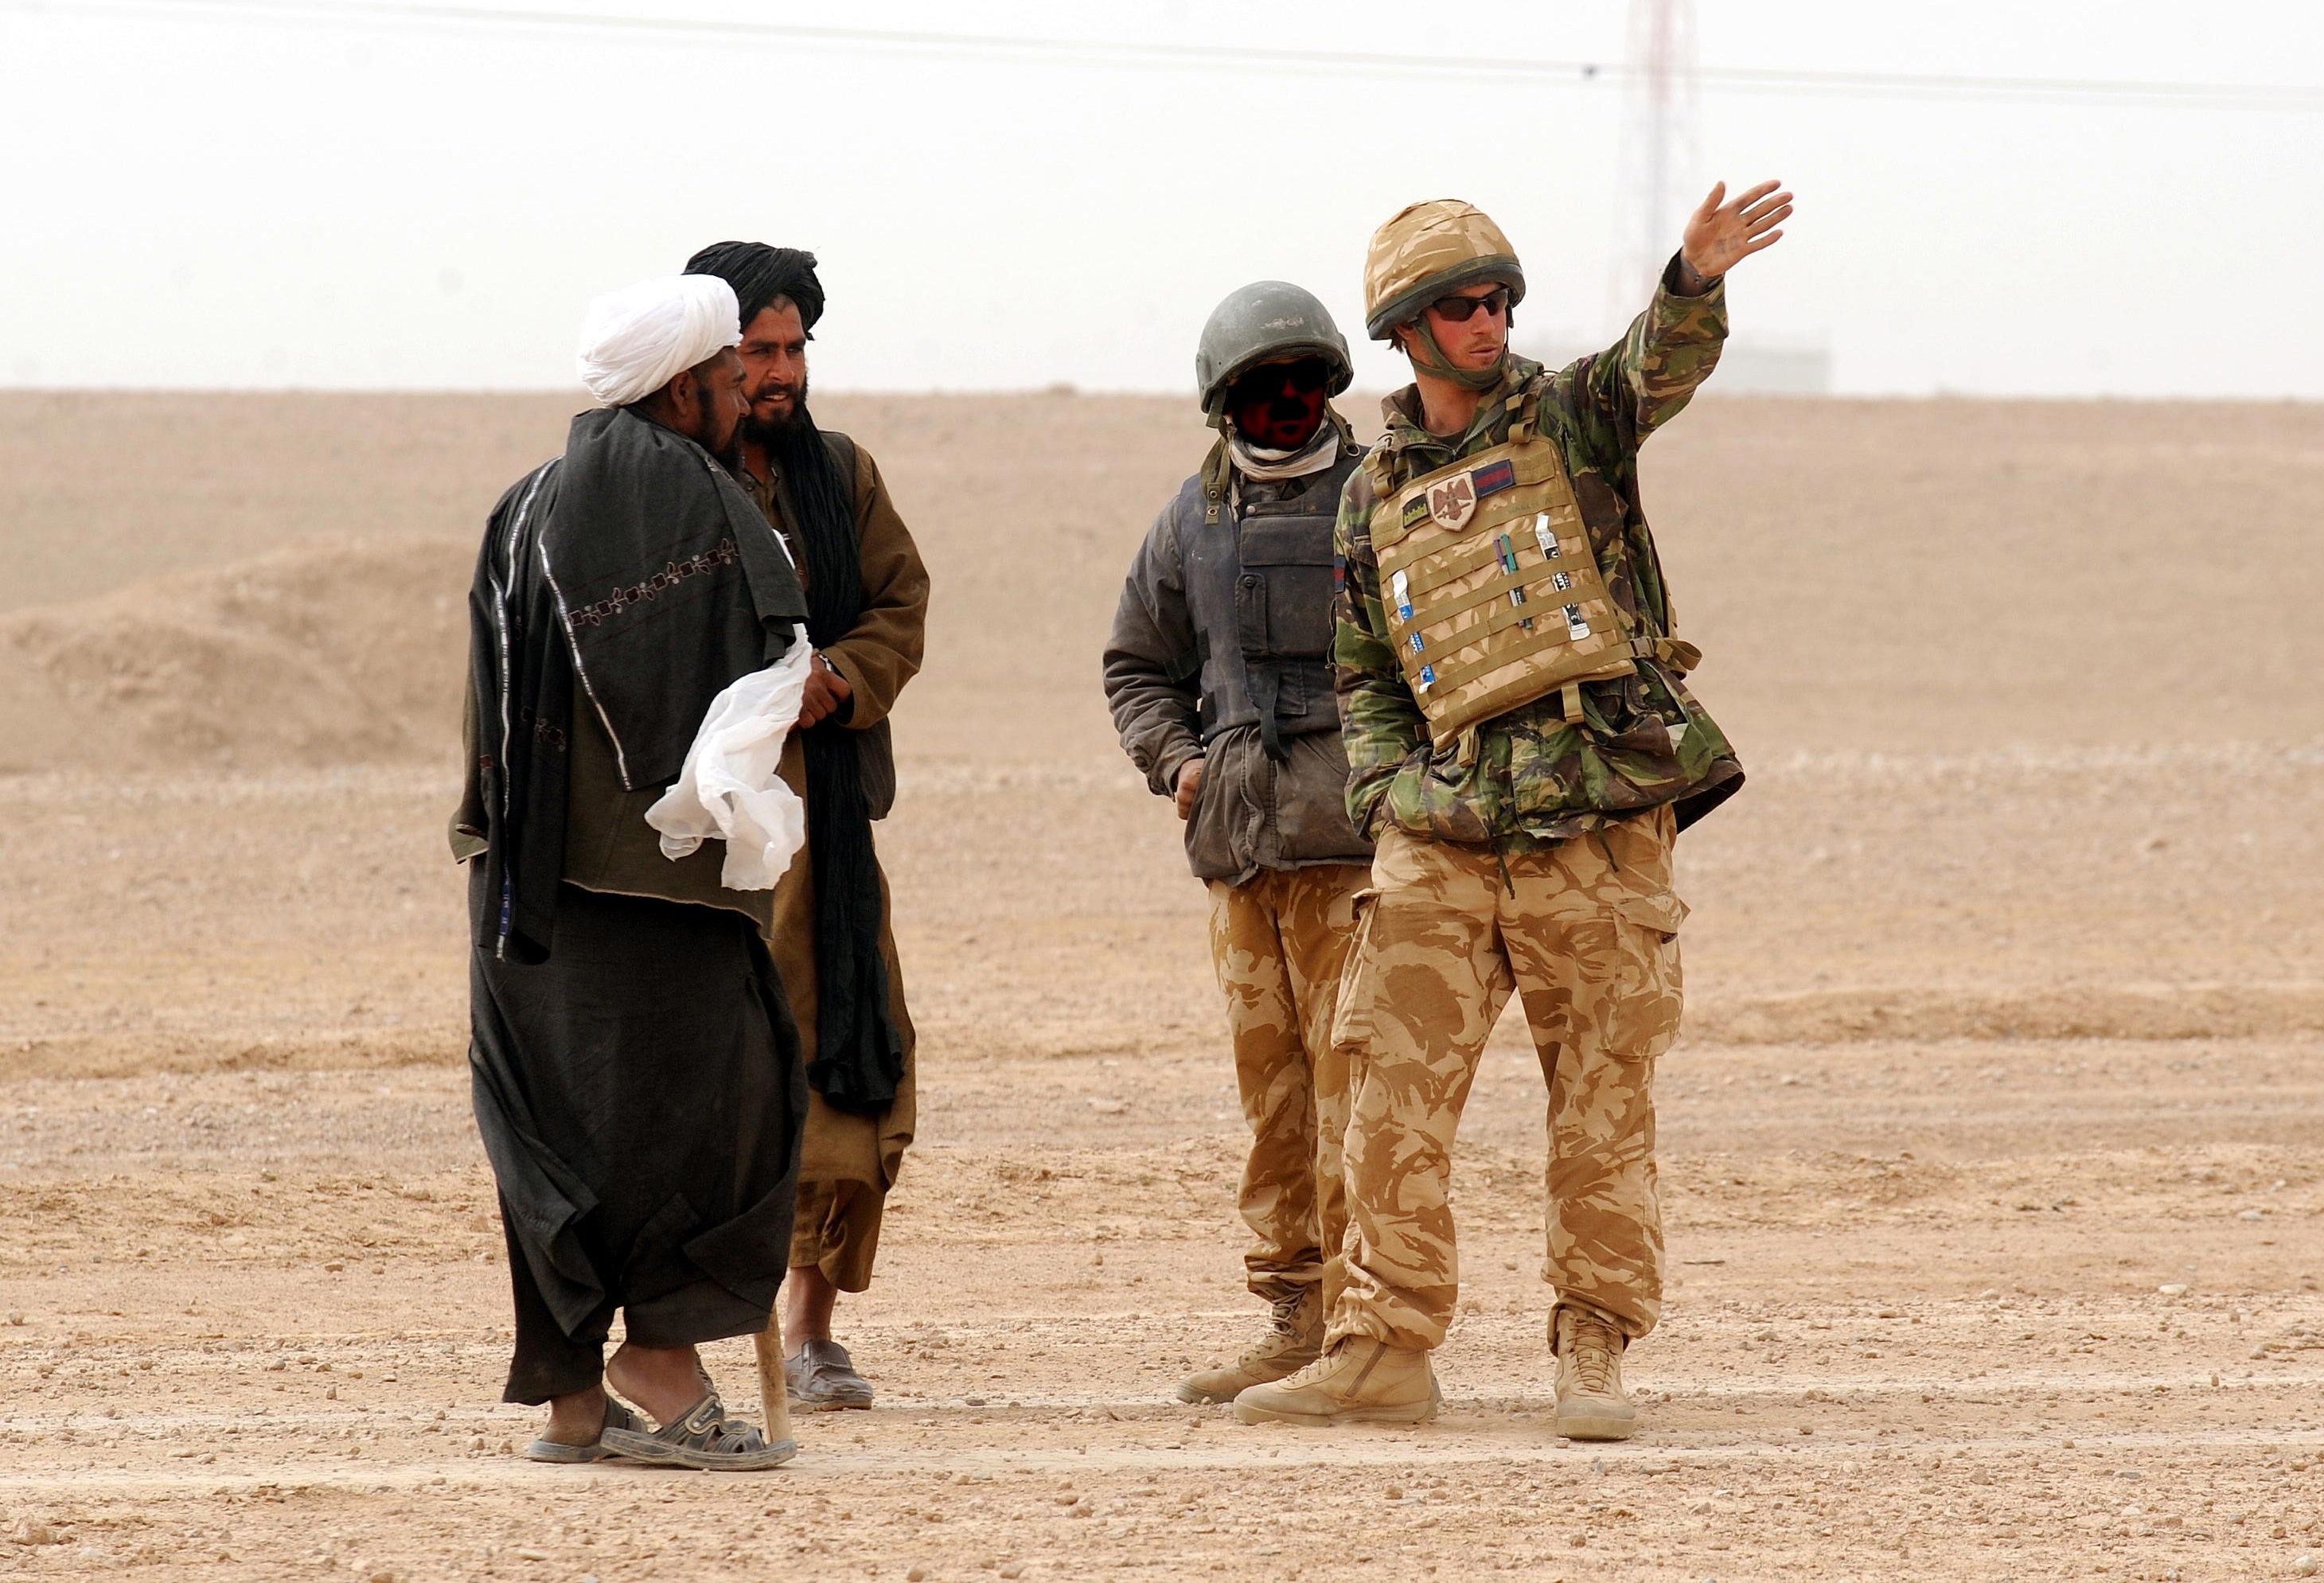 All Afghan 'terps' who fought for us merit refuge even without fighting